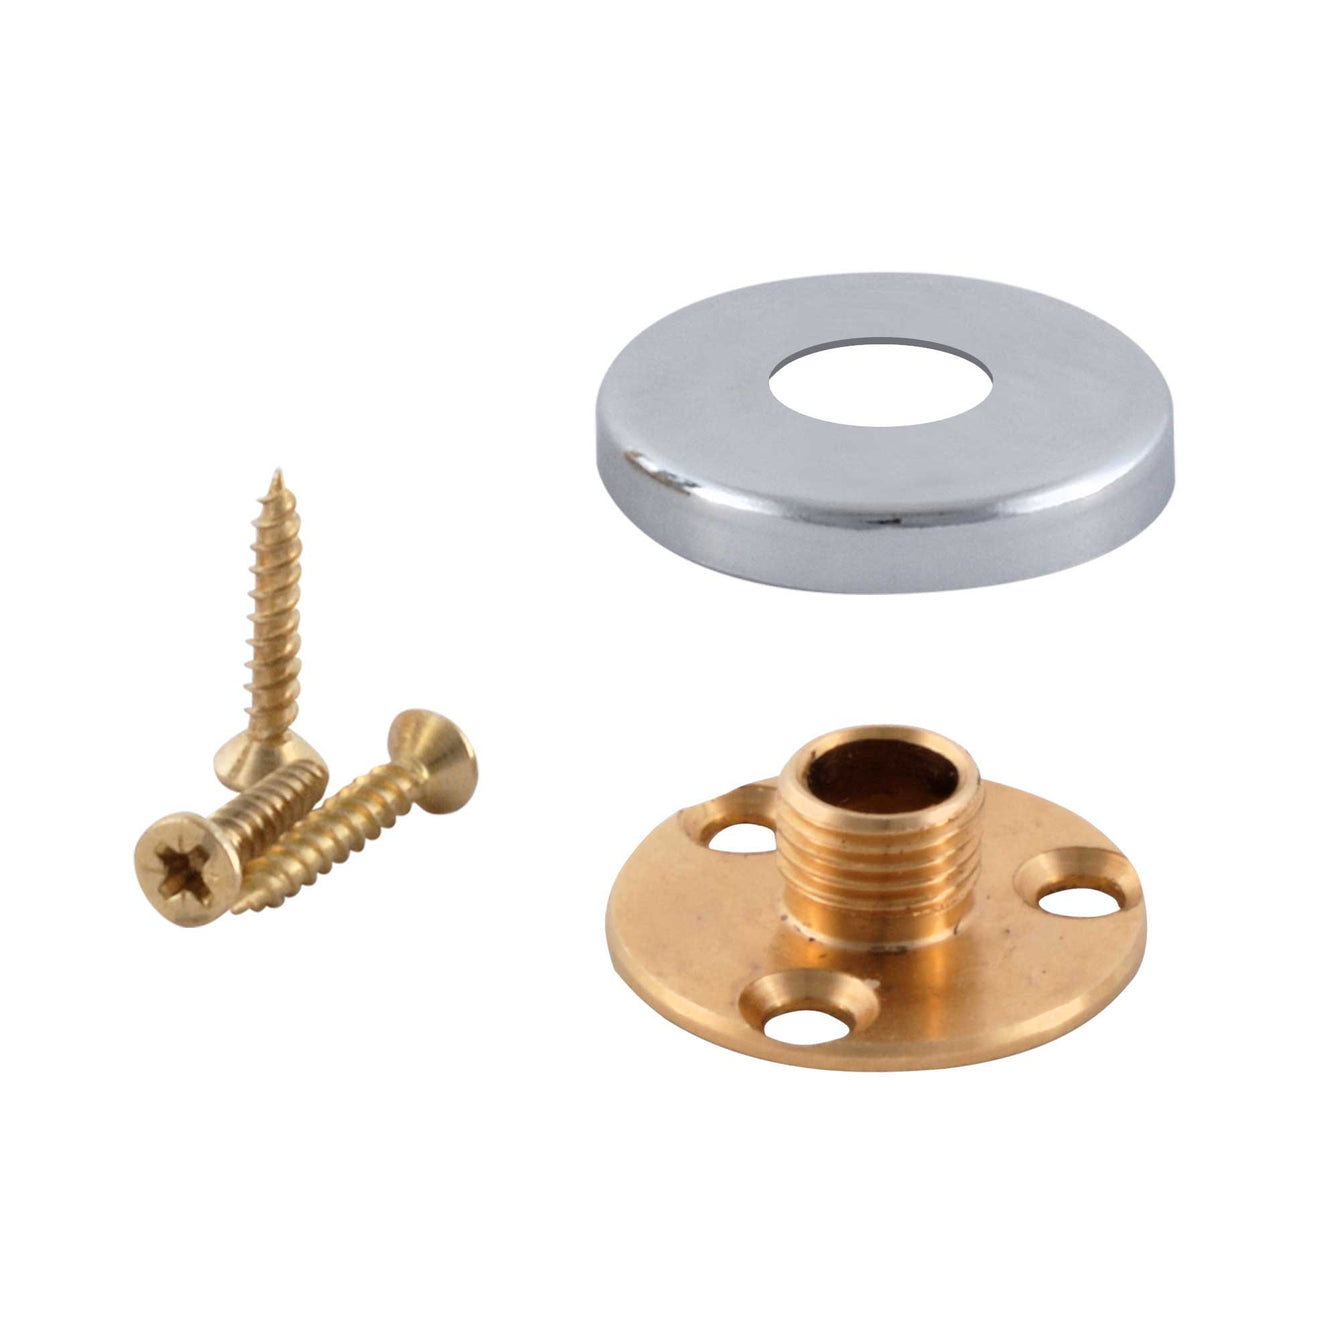 ElekTek Brass Back Plate Kit - 10mm Male Thread and Screws with Cover - For use with E27 10mm Lampholder